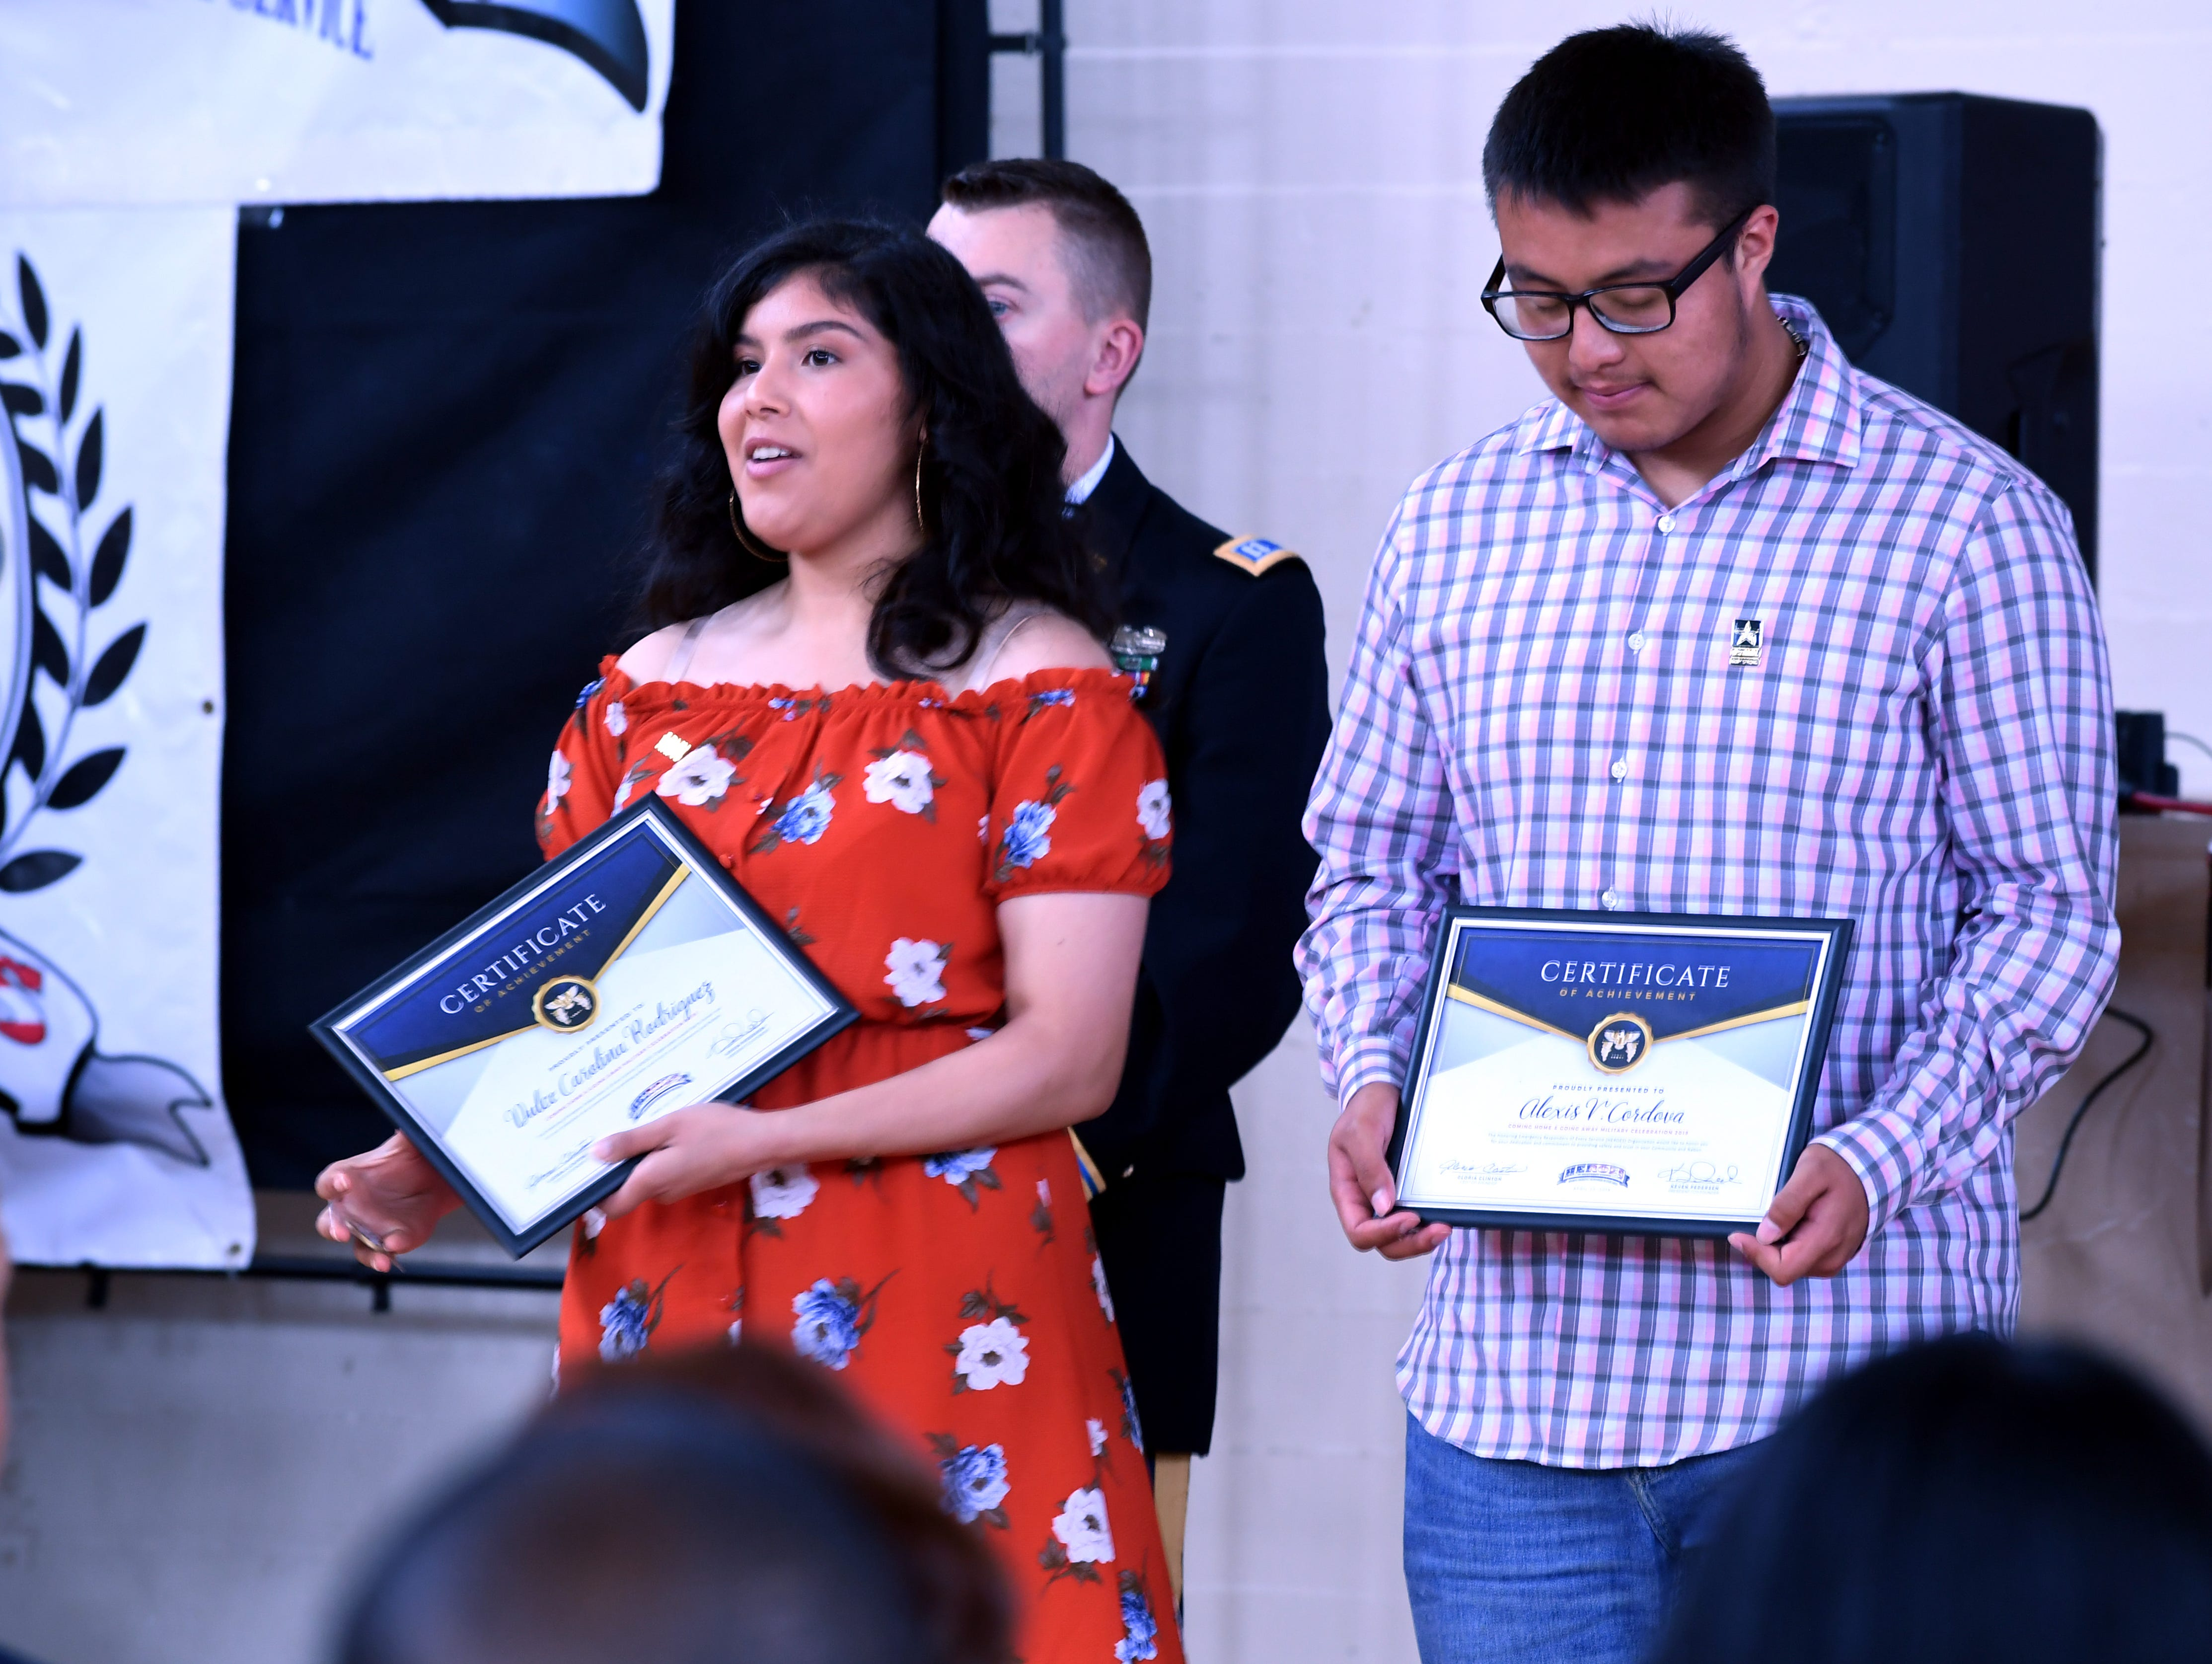 Two teens preparing to enlist received certificates of completion Saturday during the Heroes of Monterey County event. April 20, 2019.